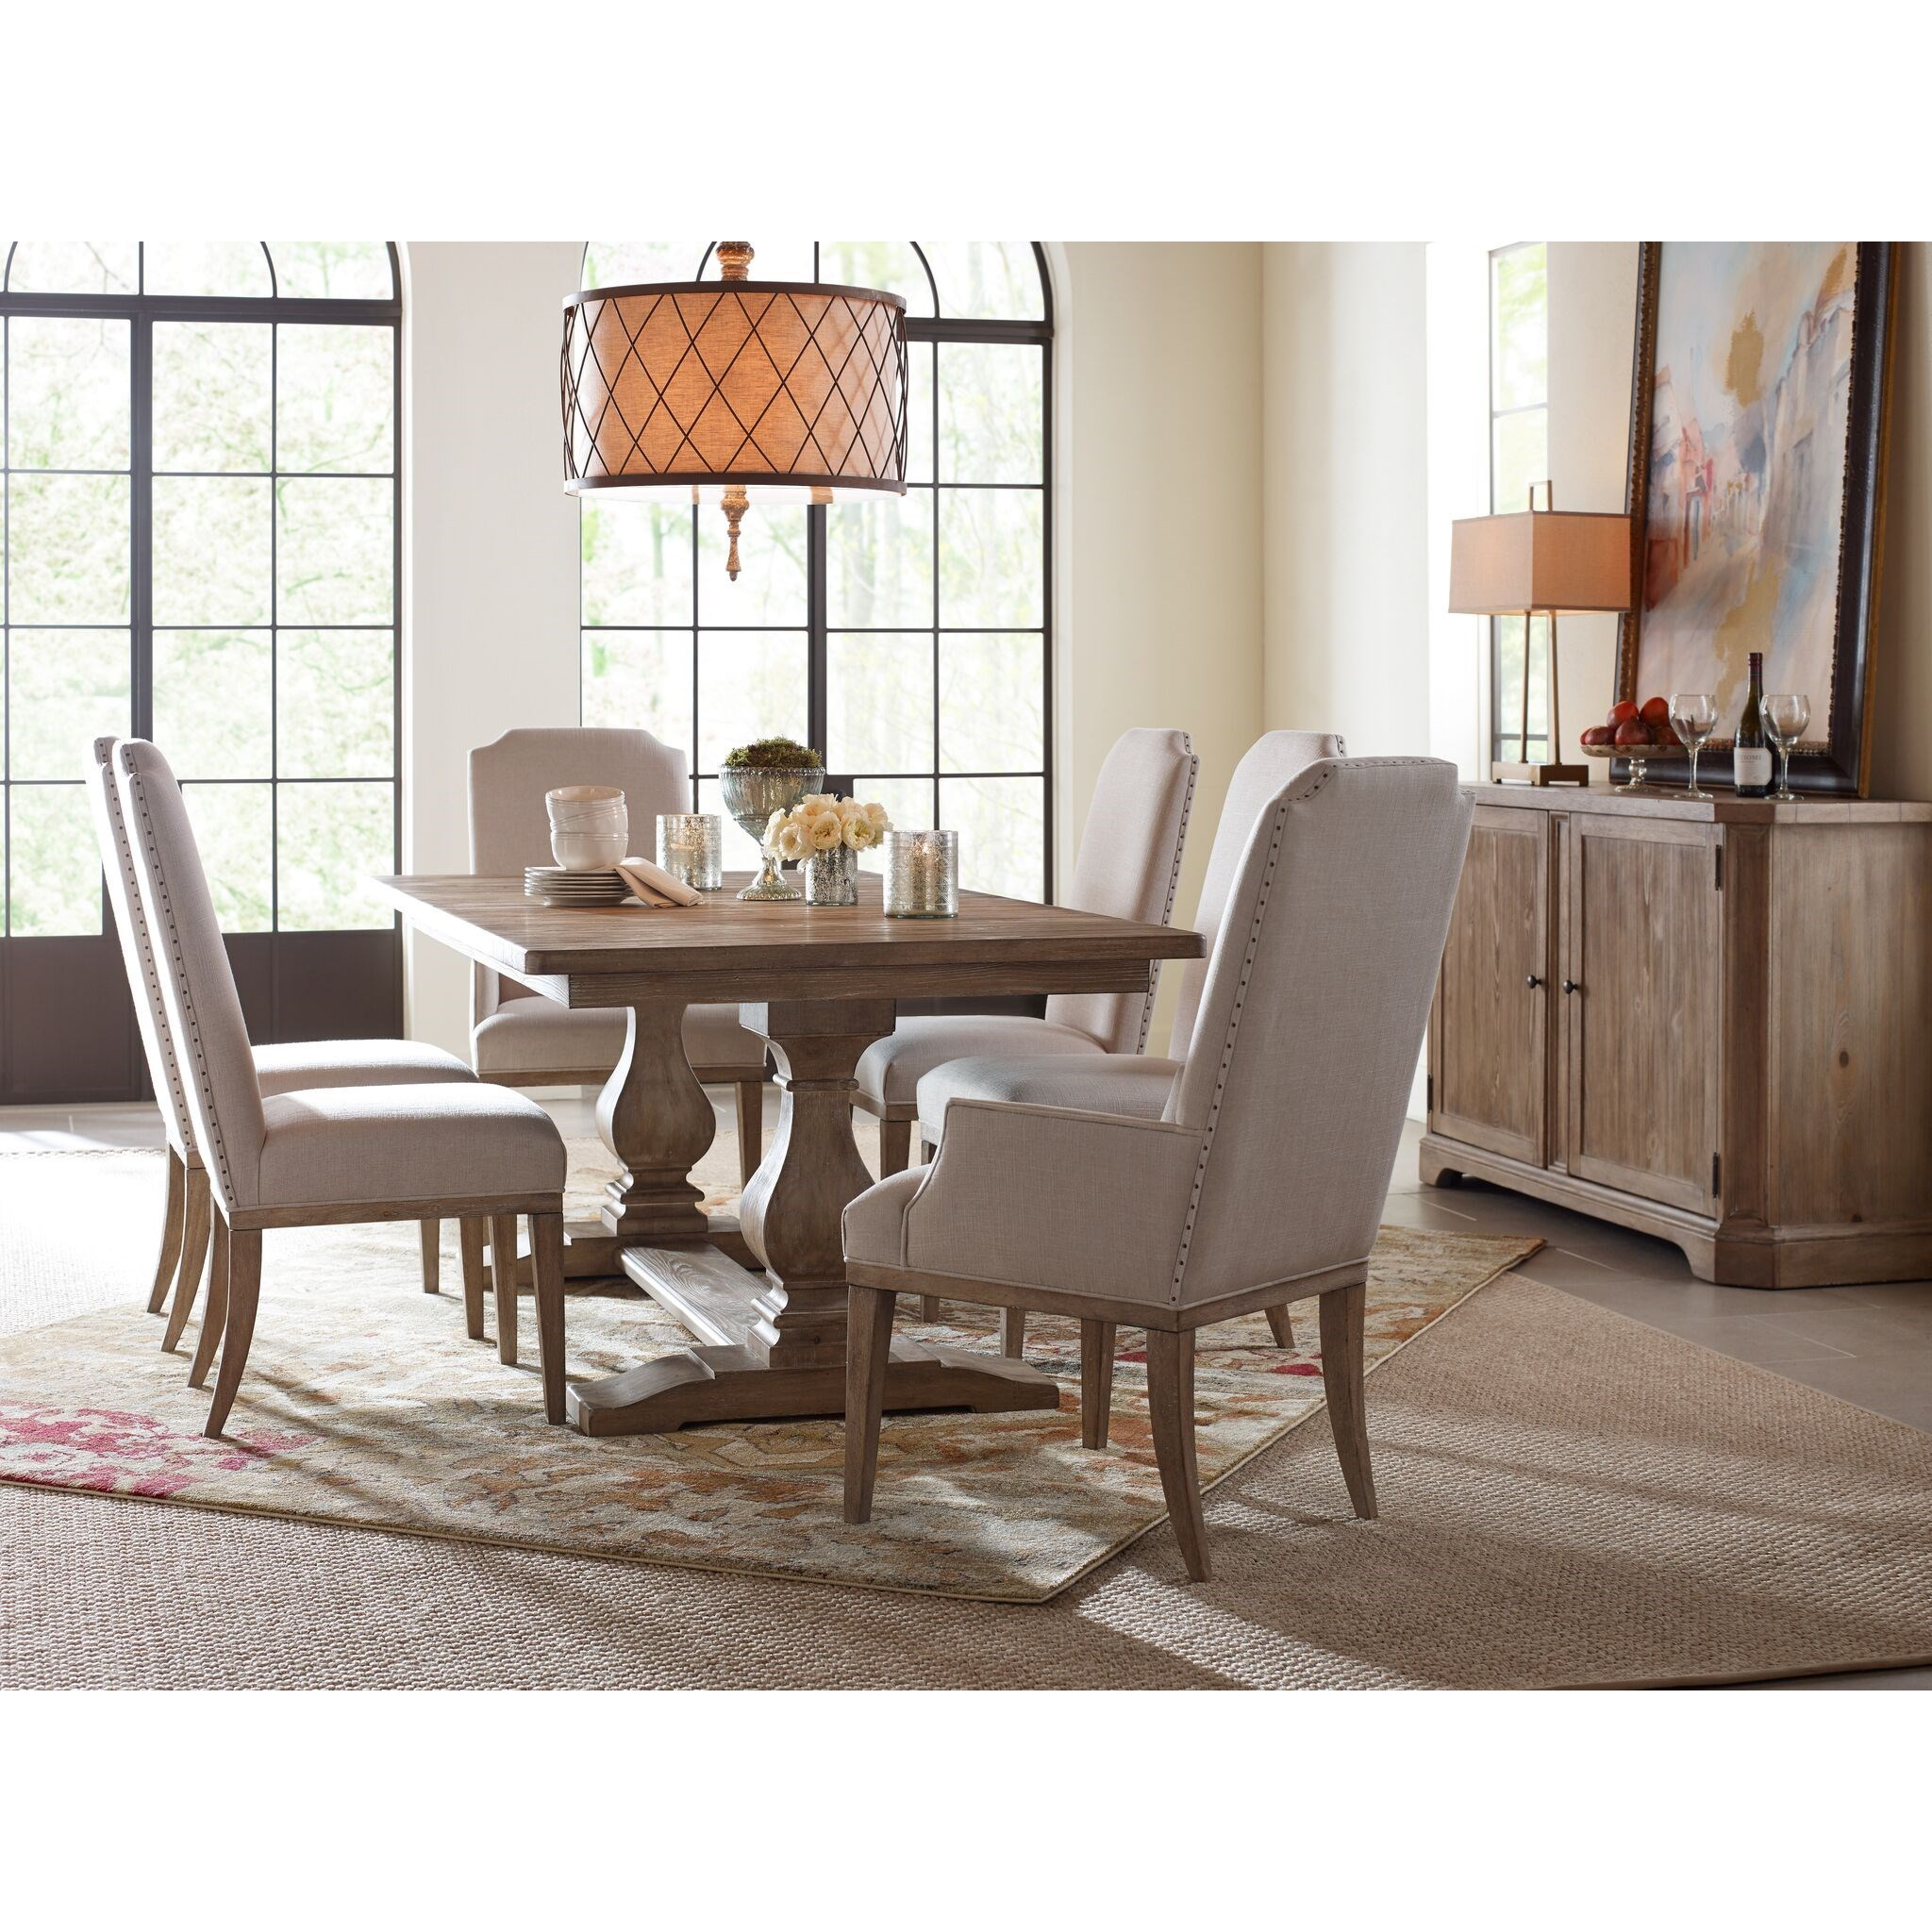 Monteverdi  Formal Dining Room Group by Rachael Ray Home by Legacy Classic at Fashion Furniture